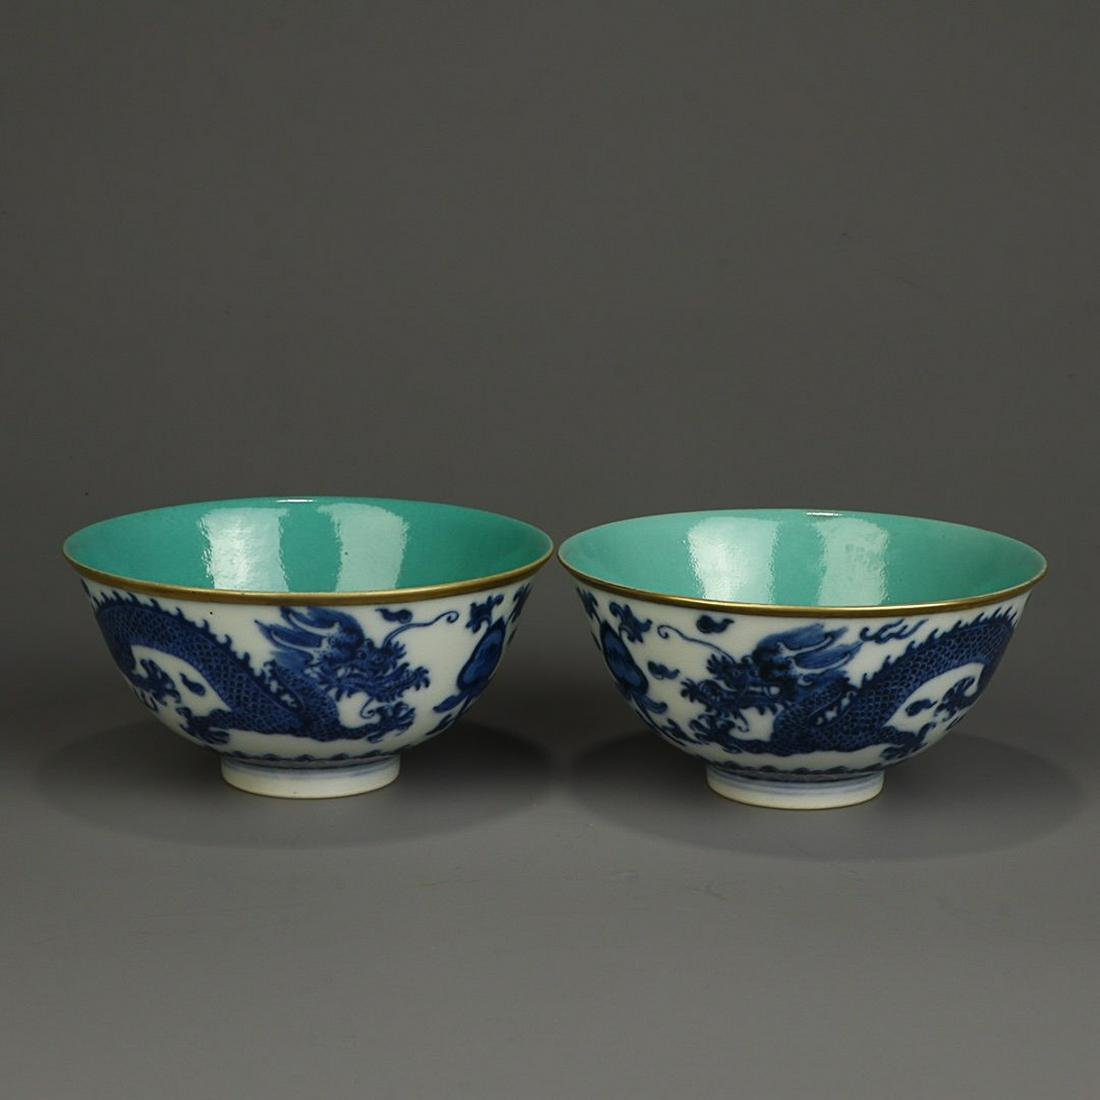 PAIR OF BLUE & WHITE 'DRAGON' GOLD-TRACED EDGES BOWLS,